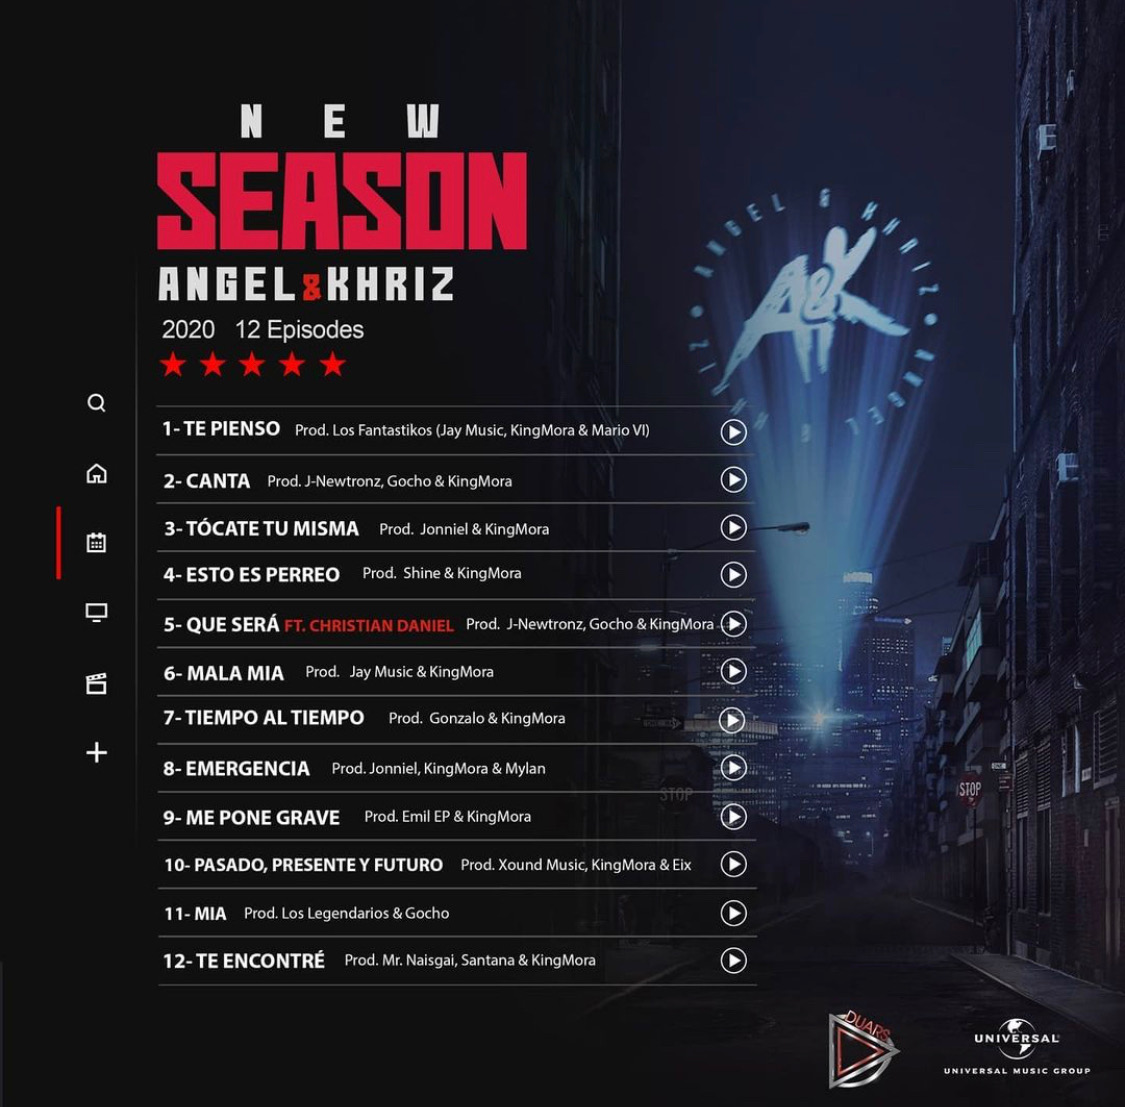 Nuevo Disco! 'New Season' de Khriz Y Angel